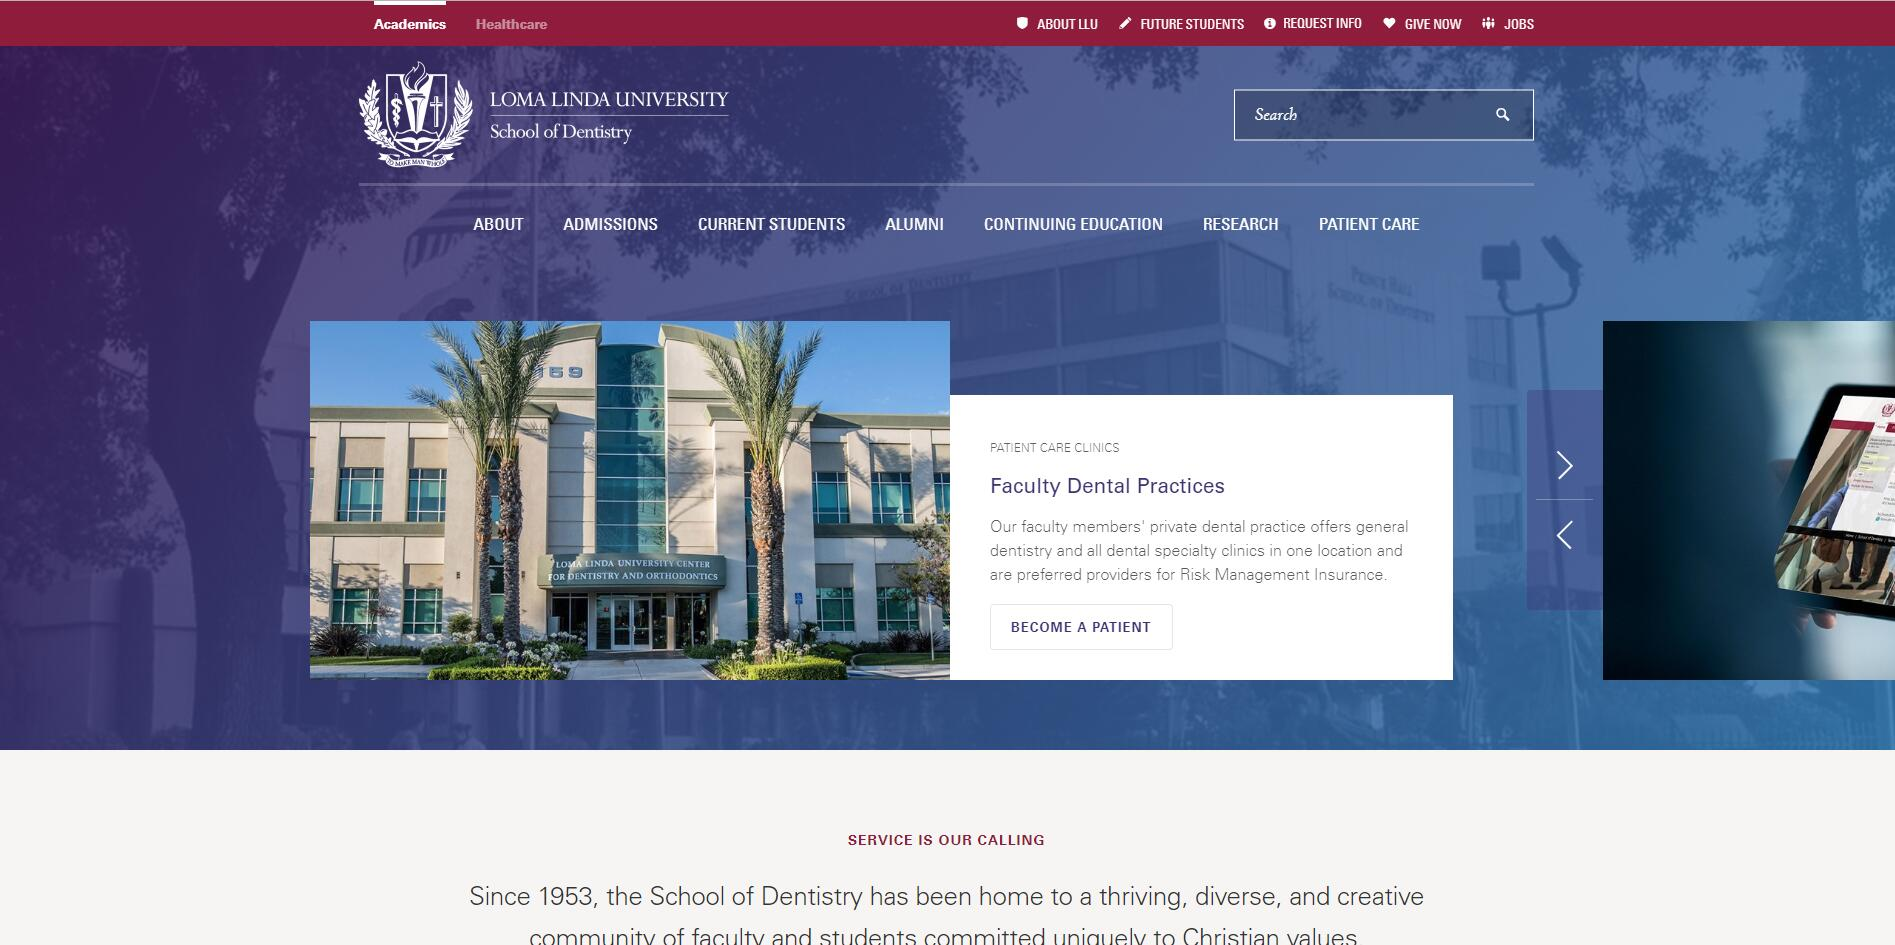 Loma Linda University School of Dentistry